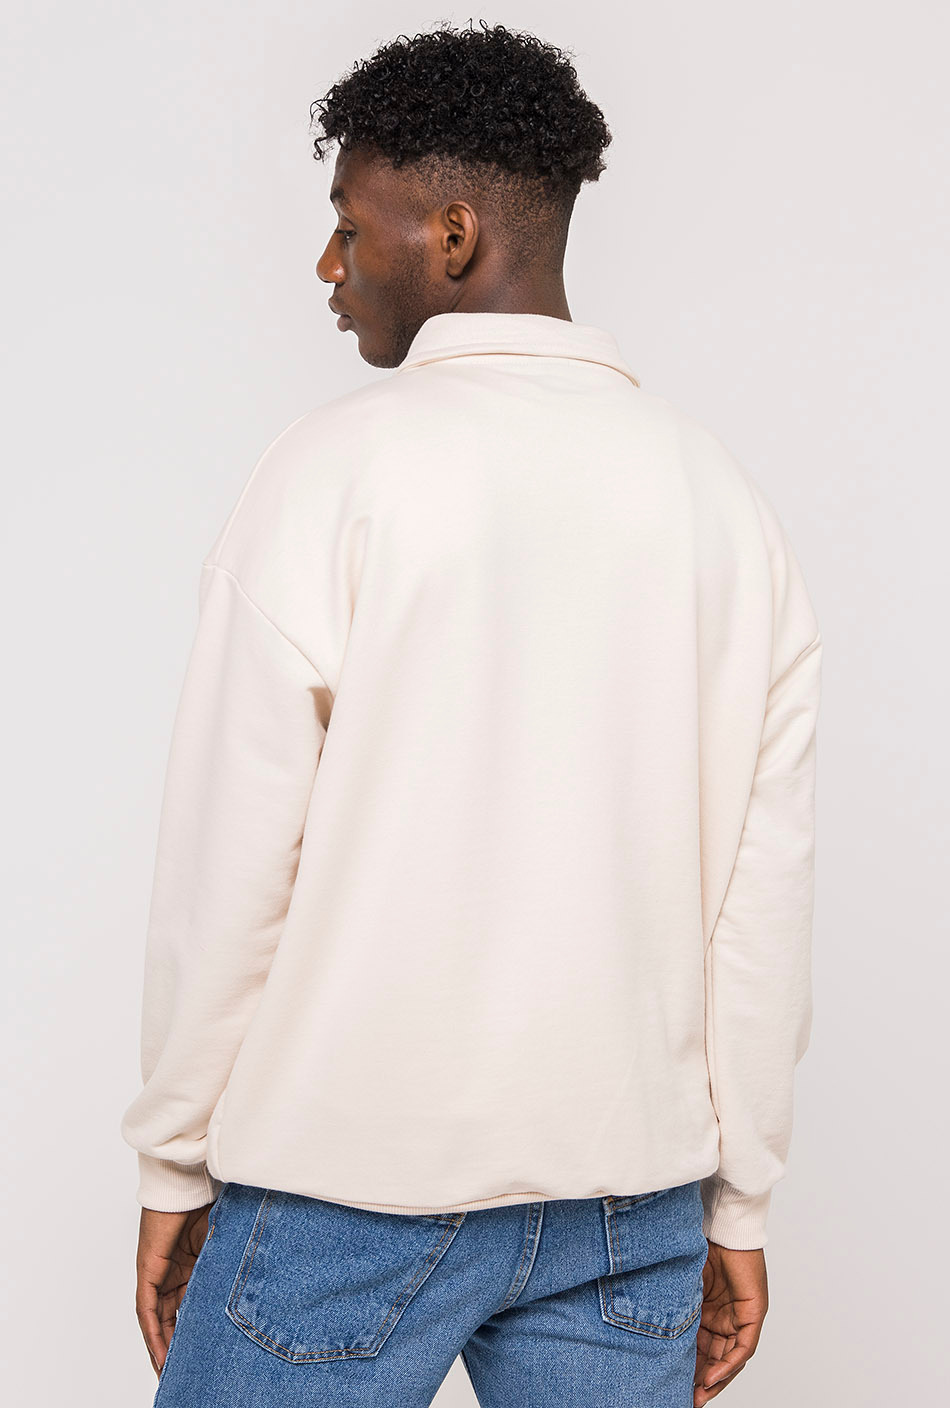 Coonor Off White Sweatshirt